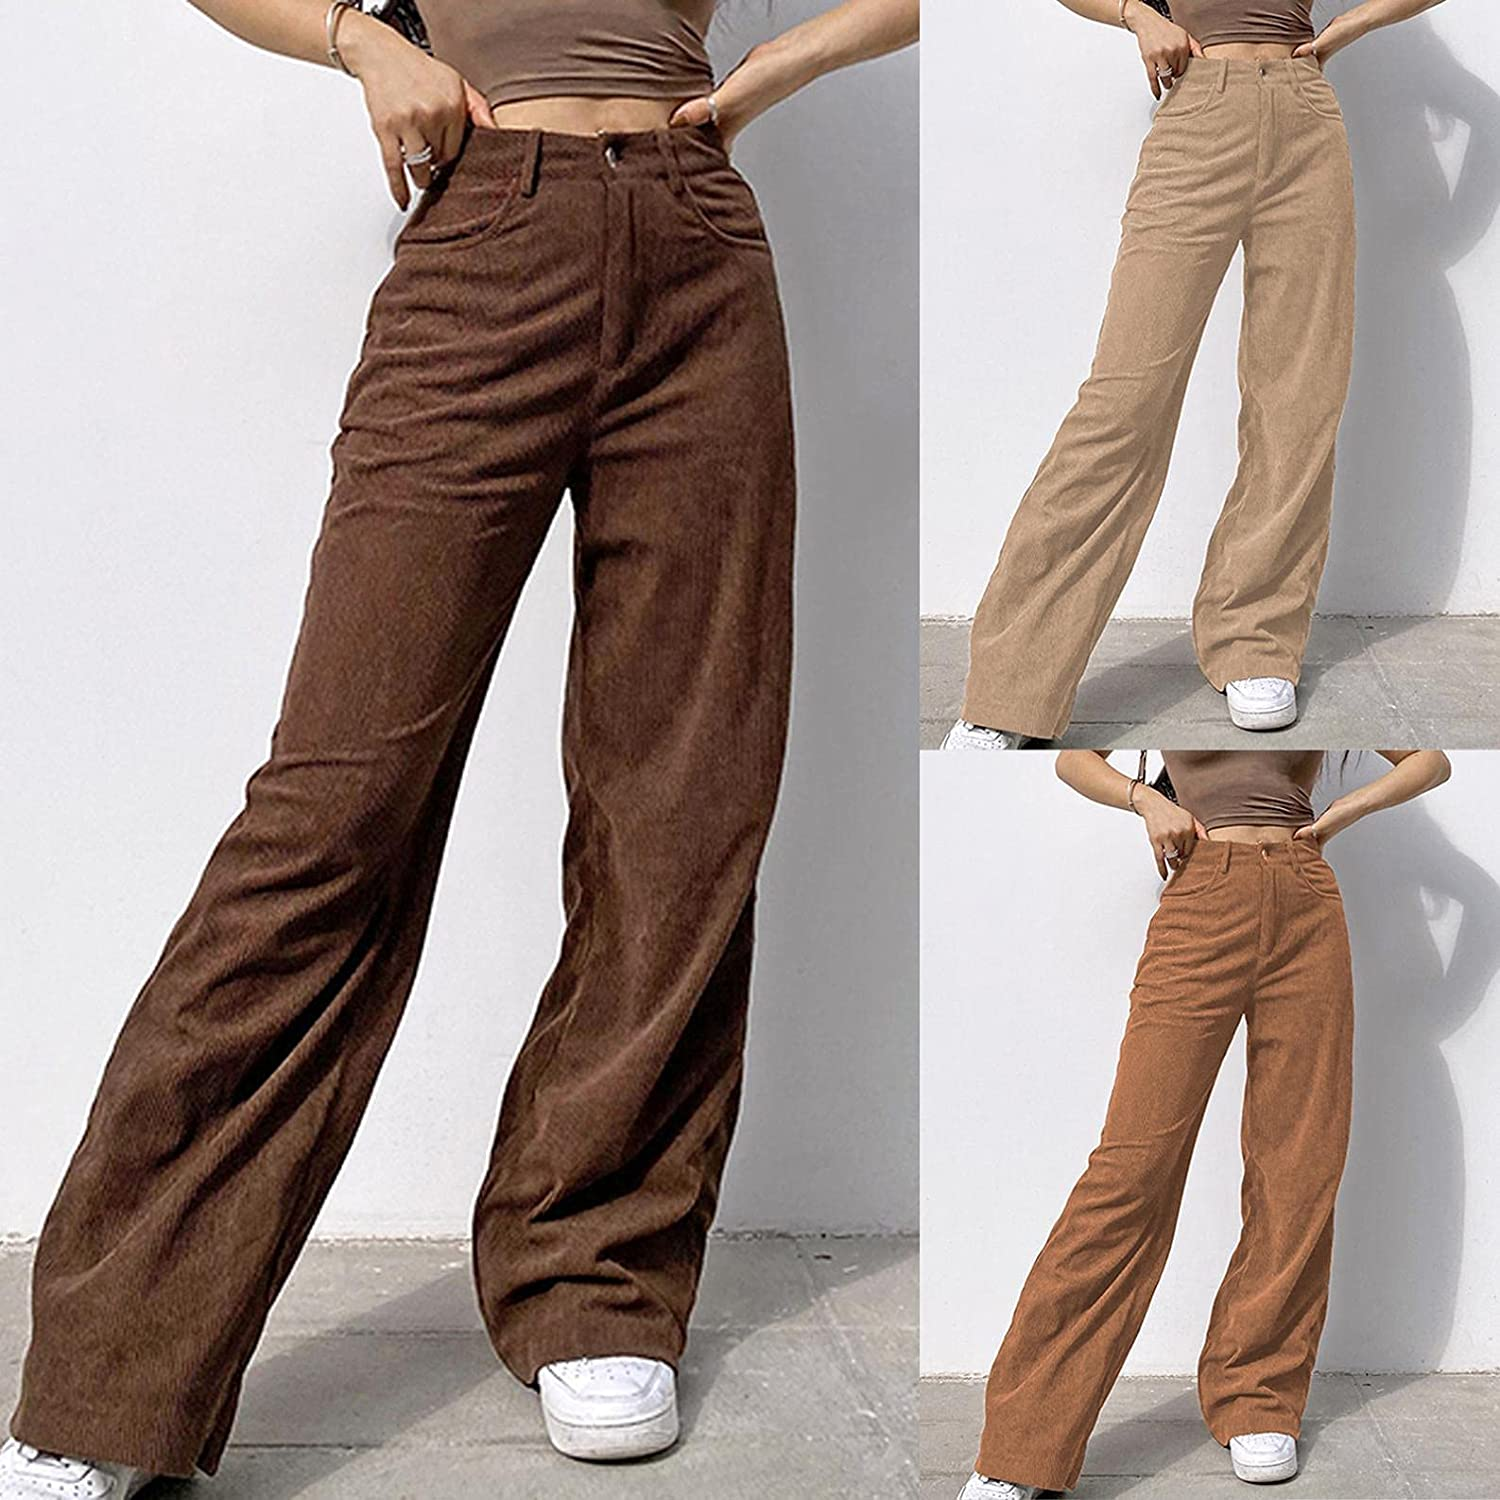 Lingbing Y2K Fashion Jeans, Women 90s Wide Leg Pant Straight Jeans Casual Baggy Trousers Patchwork Denim Pant Streetwear